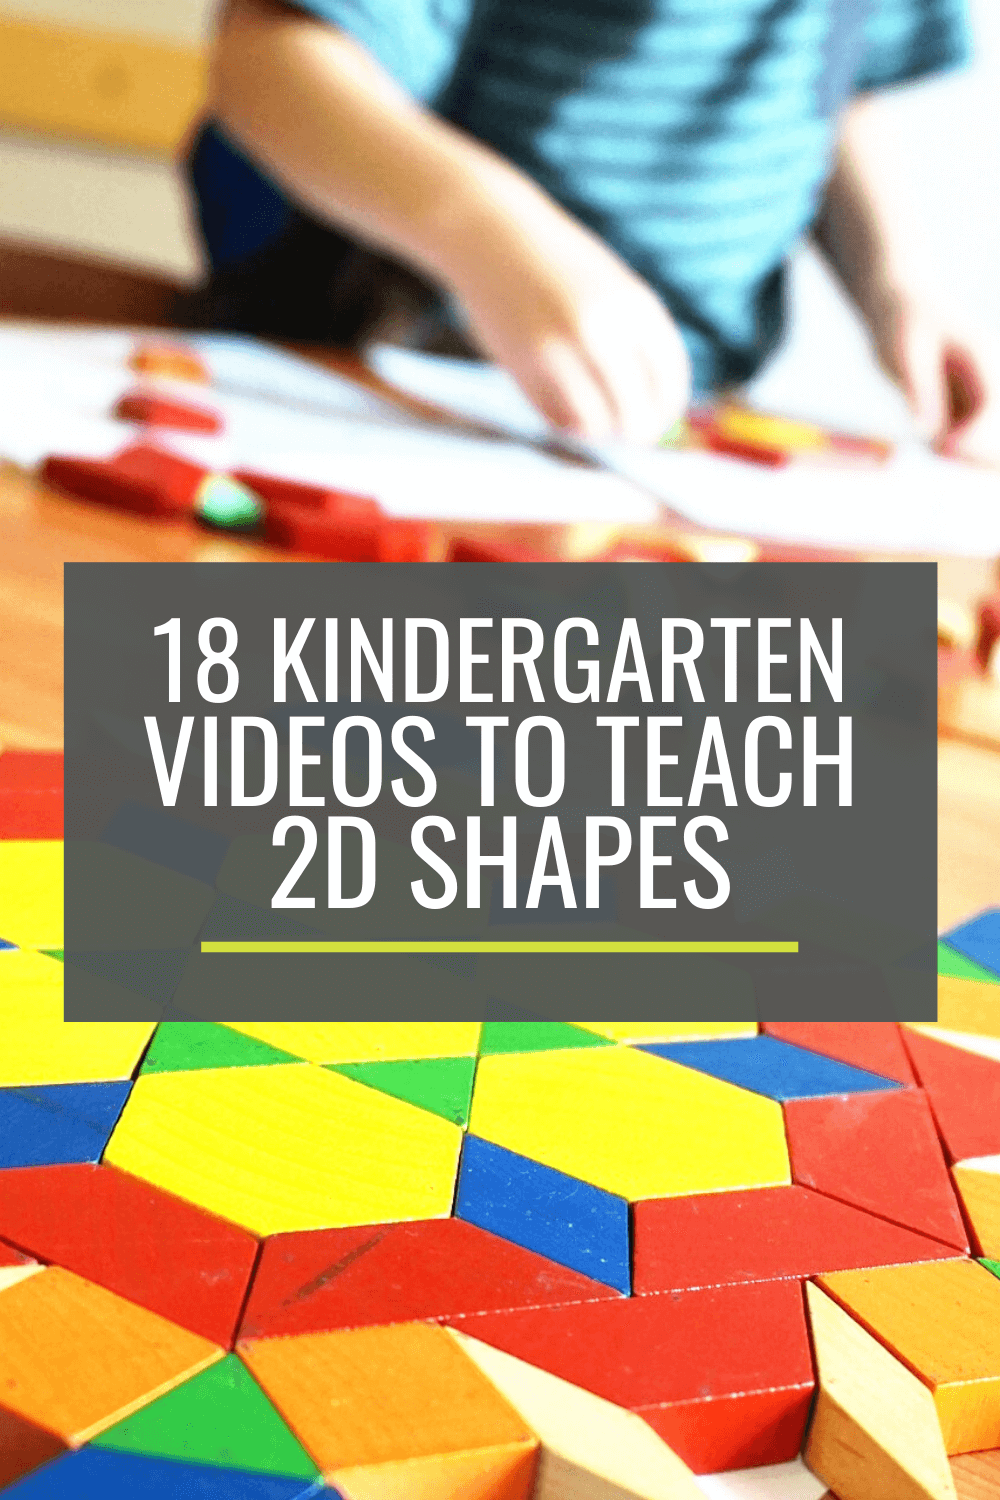 18 Kindergarten Videos to Teach 2D Shapes